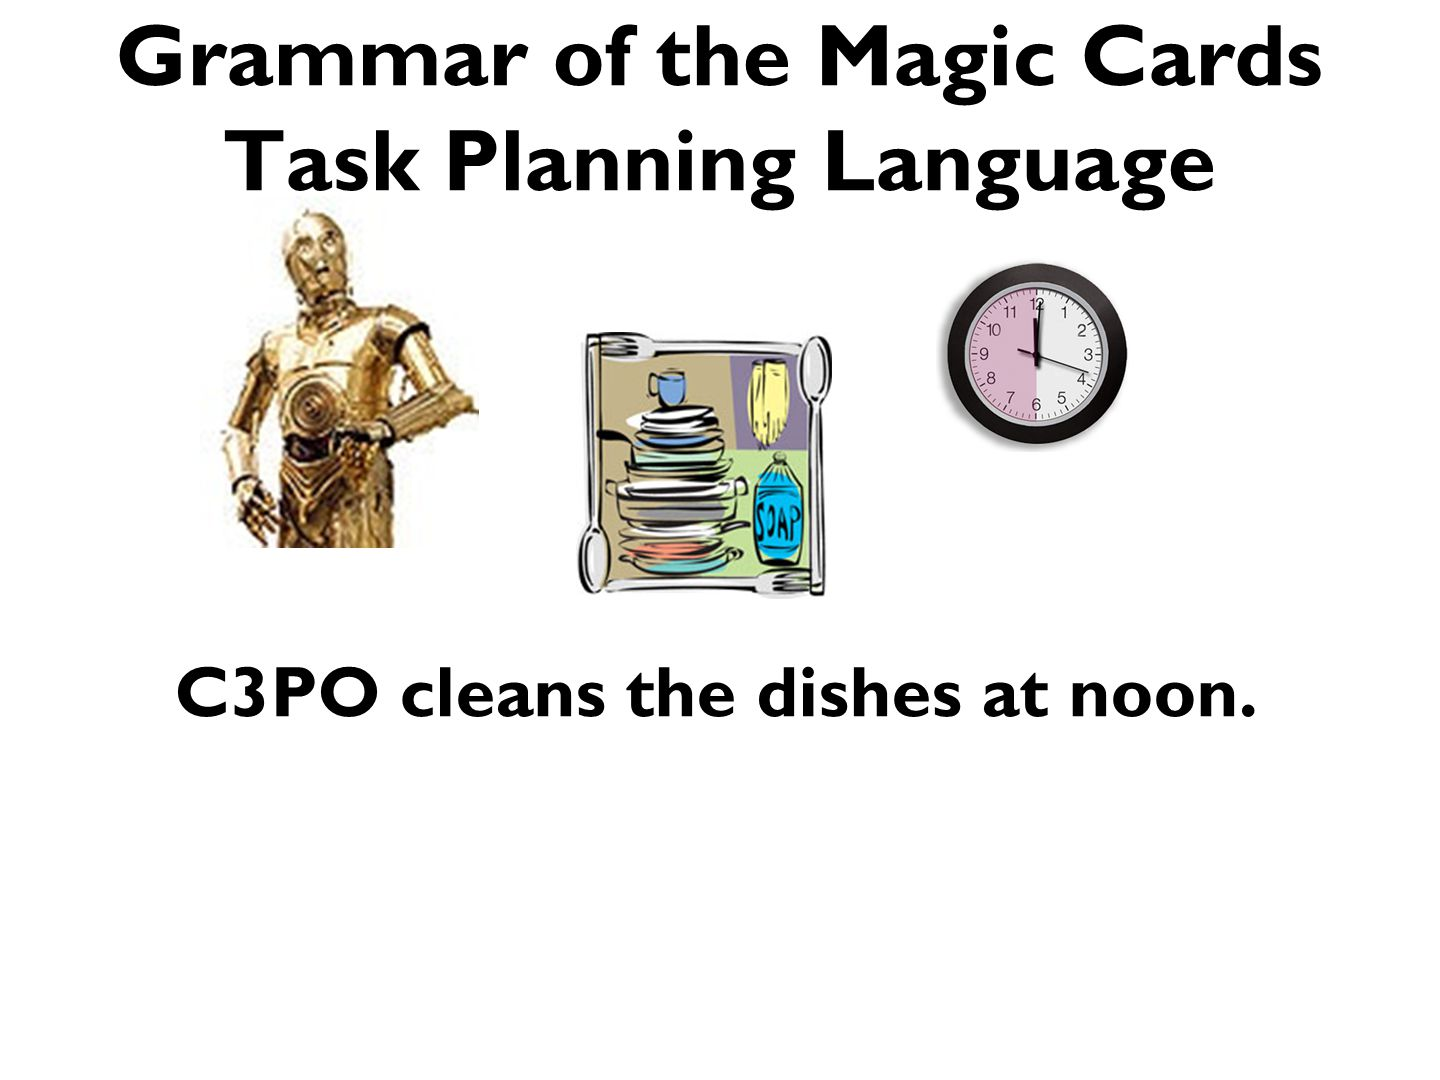 Grammar of the Magic Cards Task Planning Language C3PO cleans the dishes at noon.